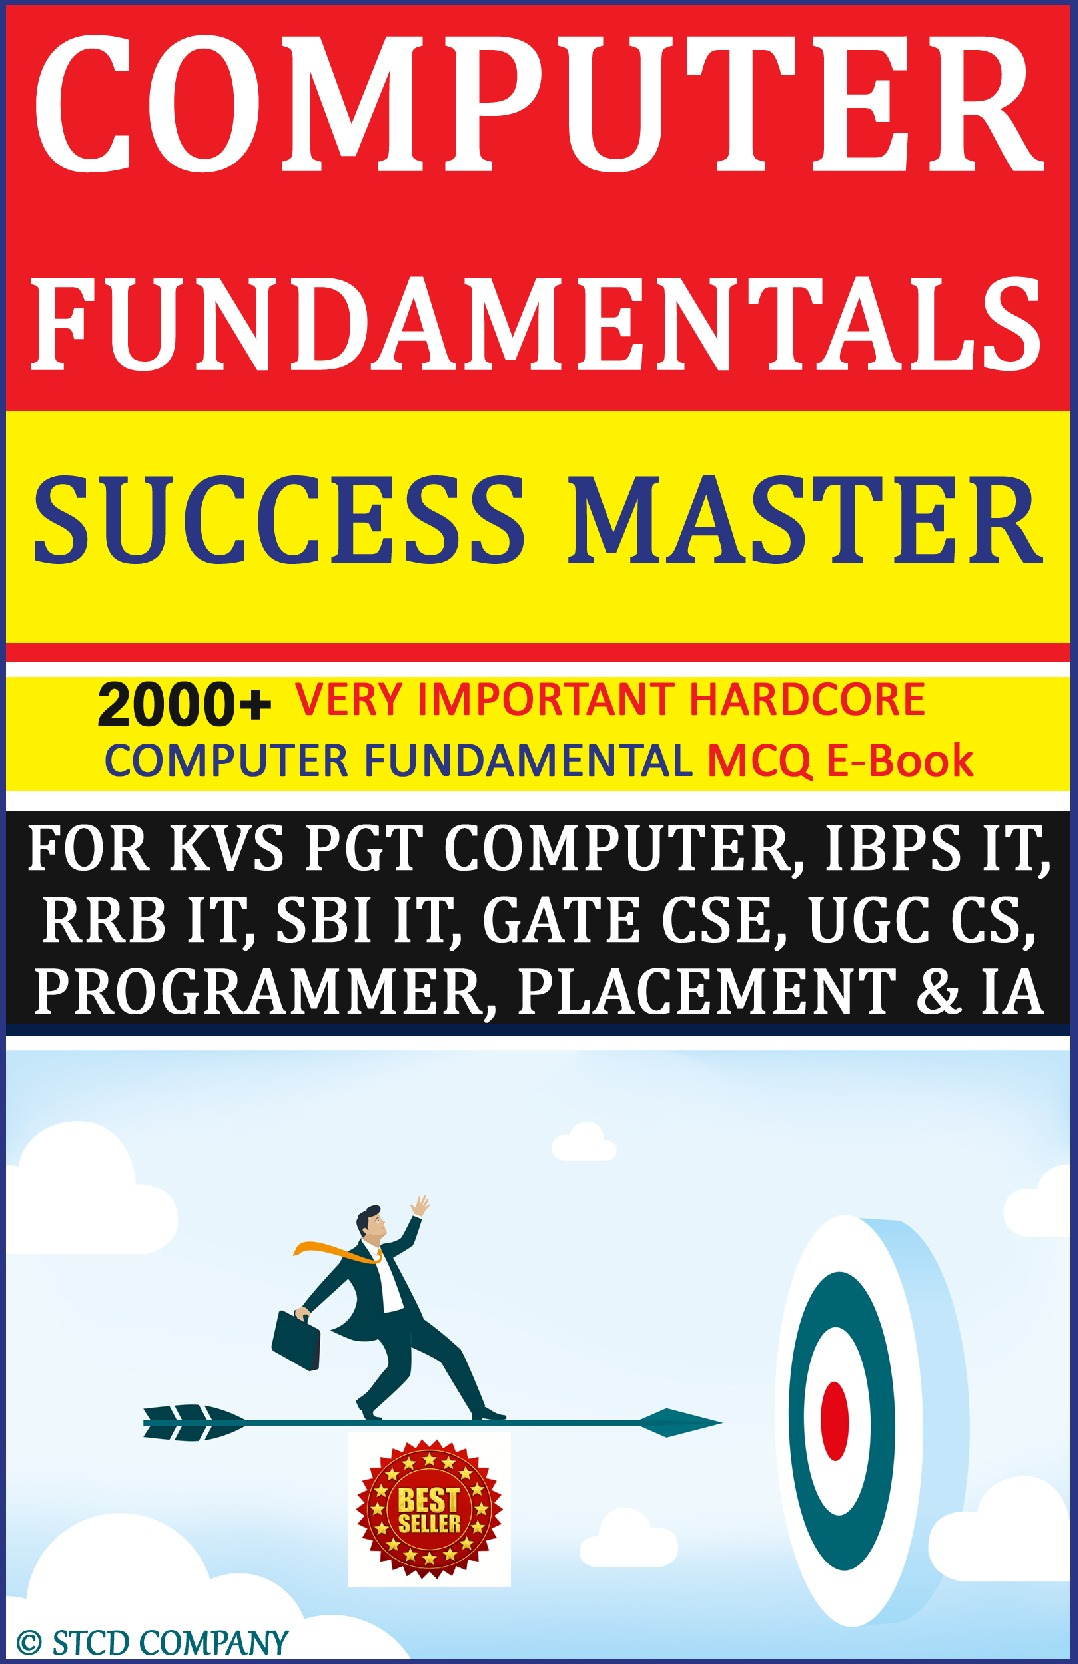 Computer Fundamentals Success Master Edition- - 2000+ Important MCQ